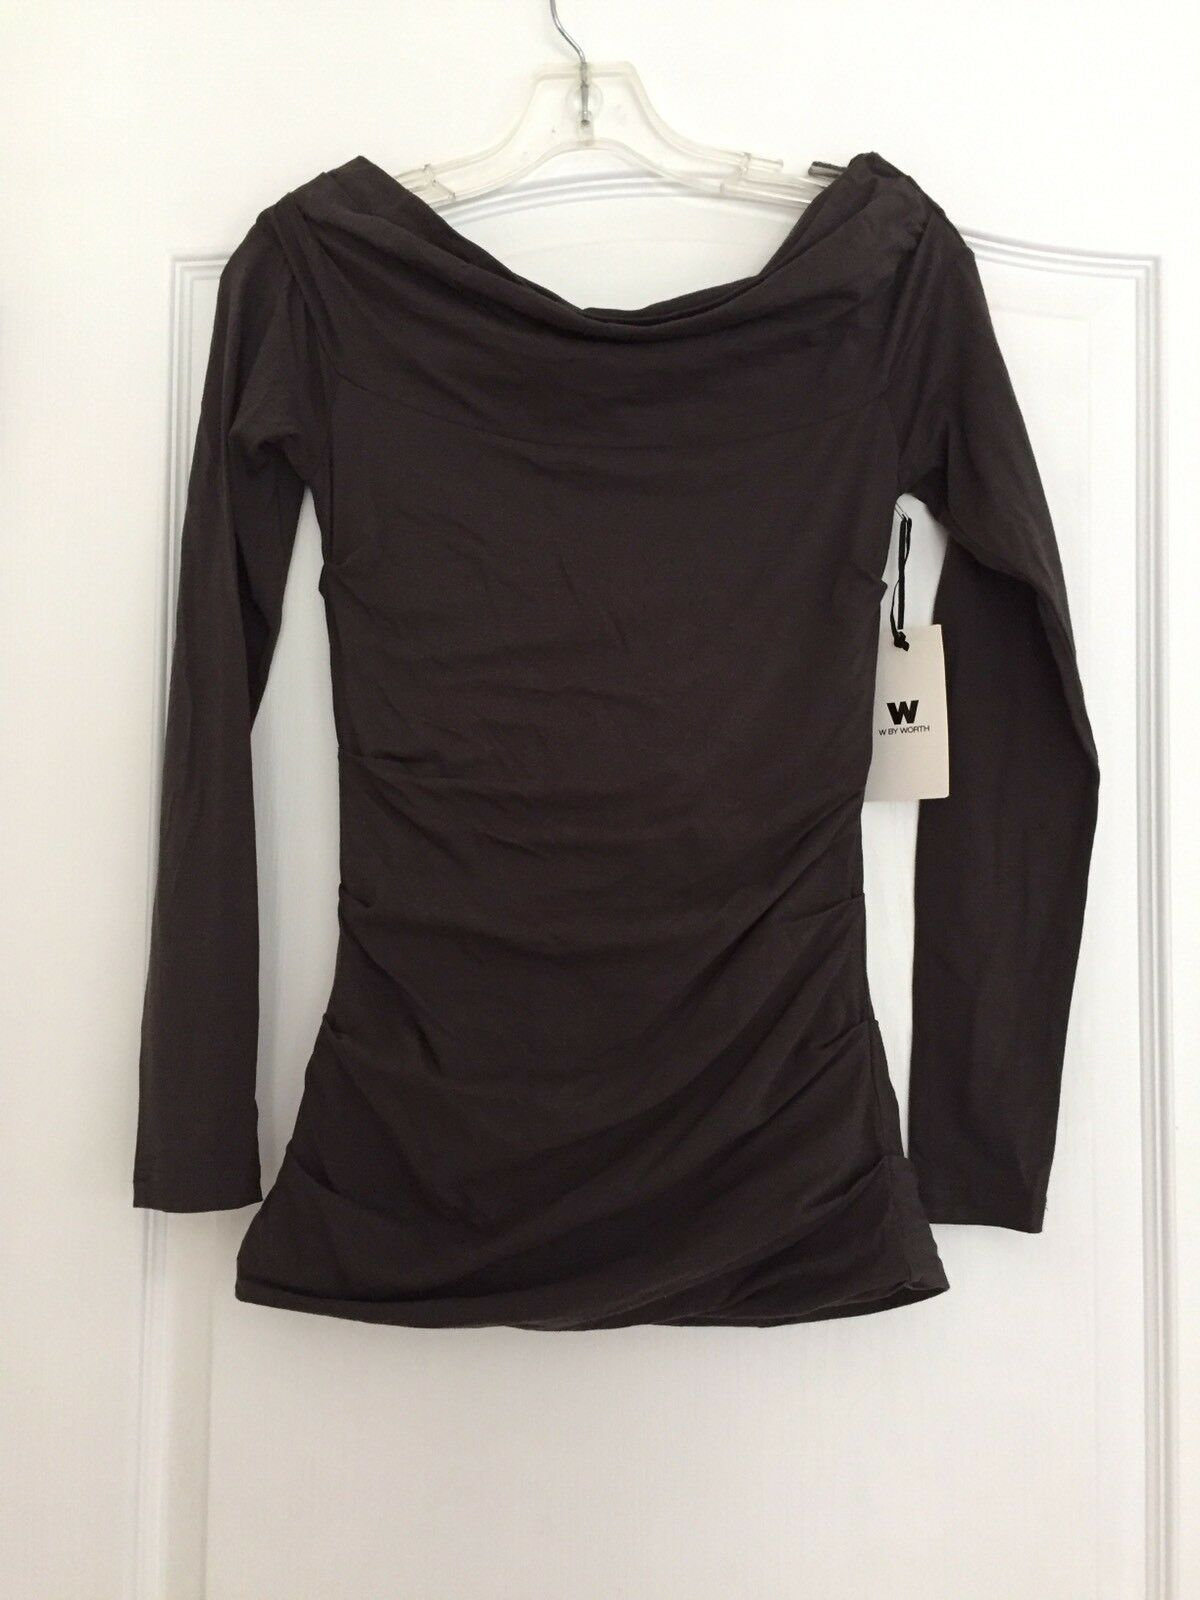 W BY WORTH Woman's Ruched Stretch Top color  Carbon Size Small NWT